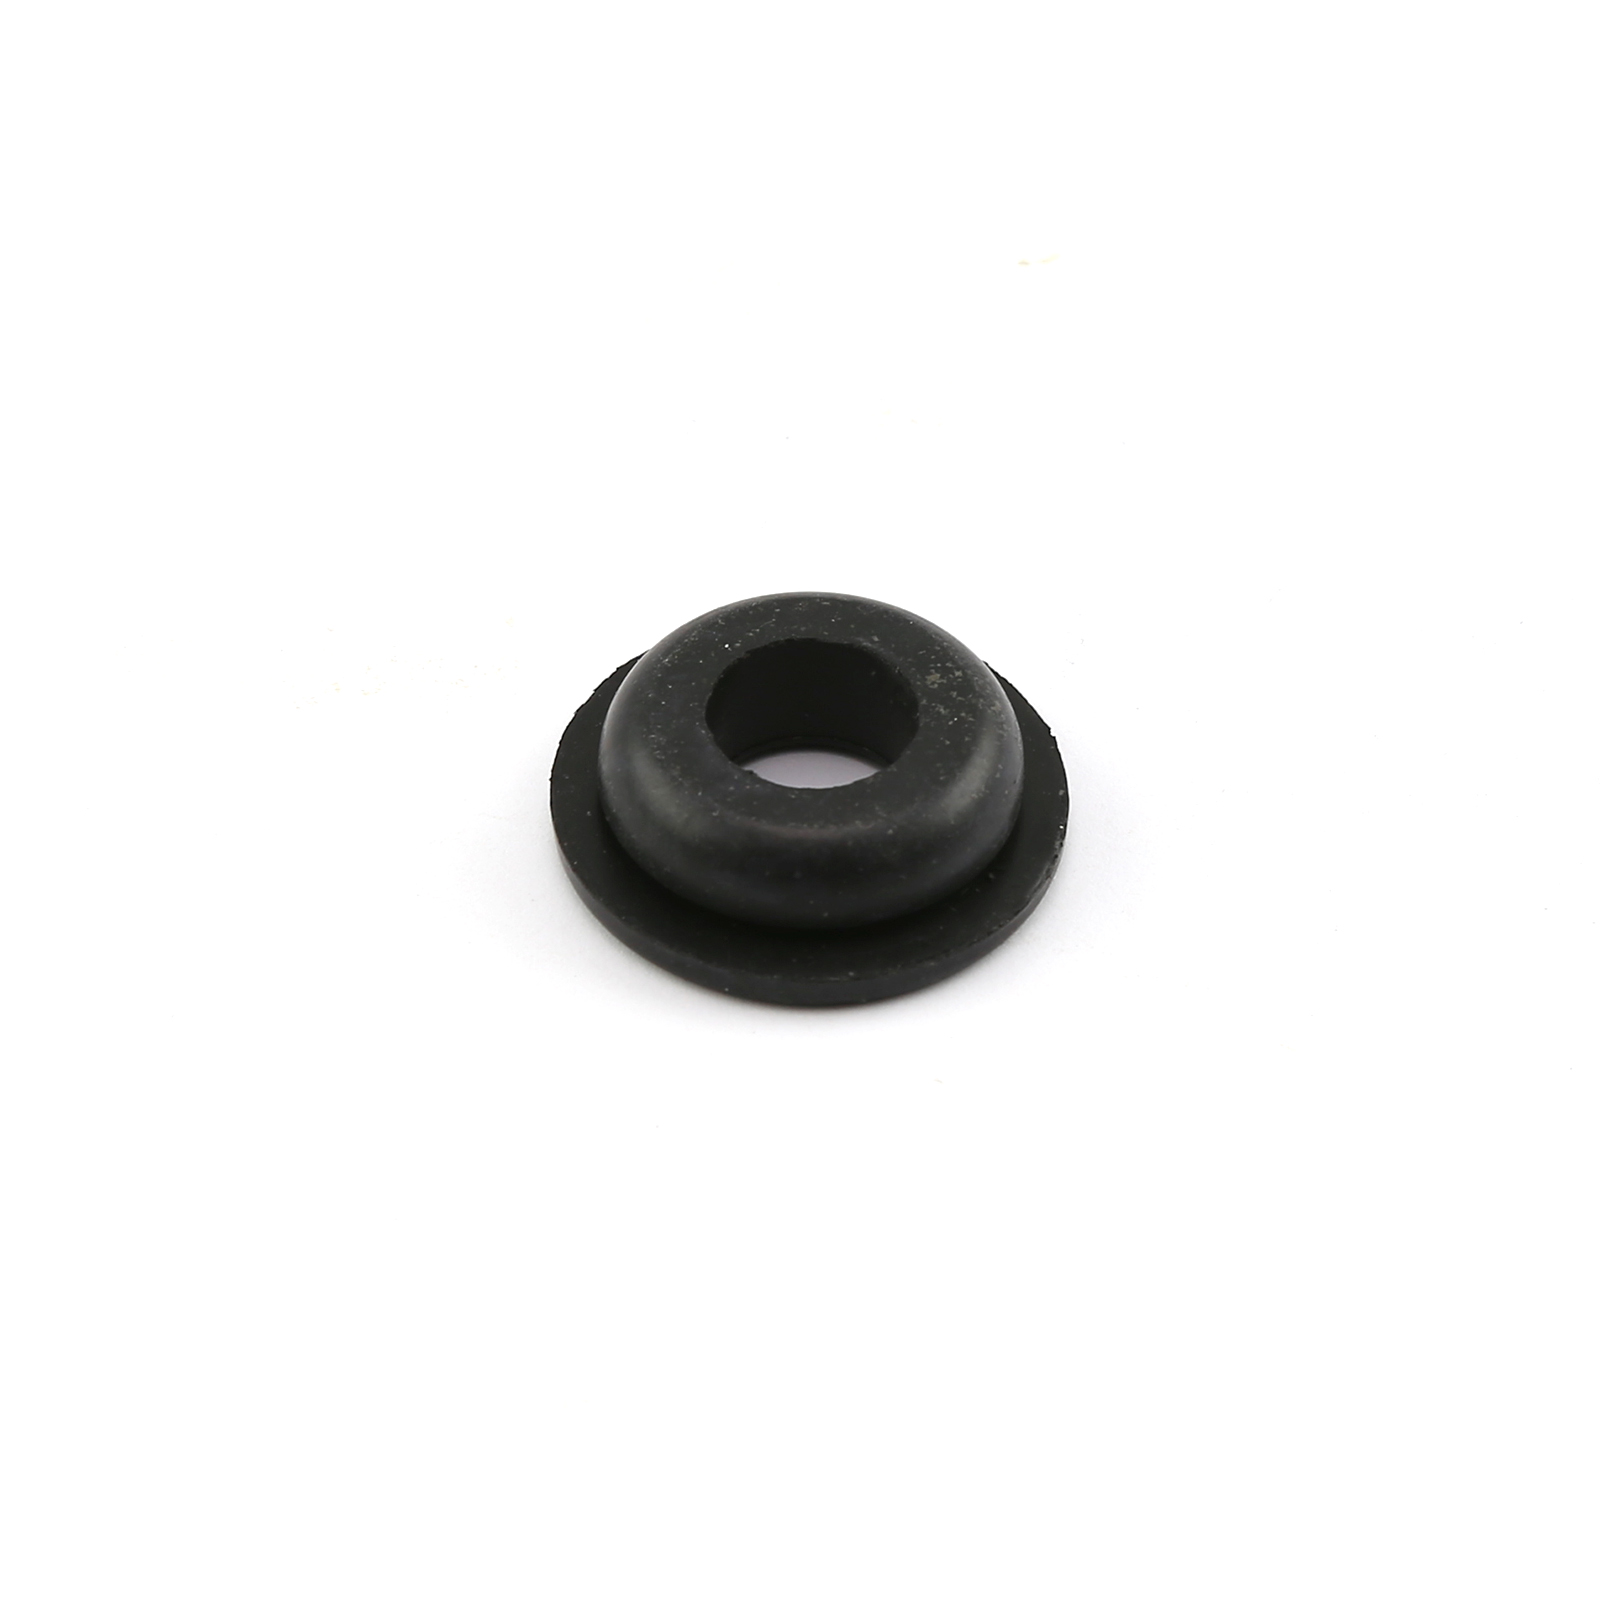 "Rubber Breather Grommet - 3/4"" Id - 1"" Od"